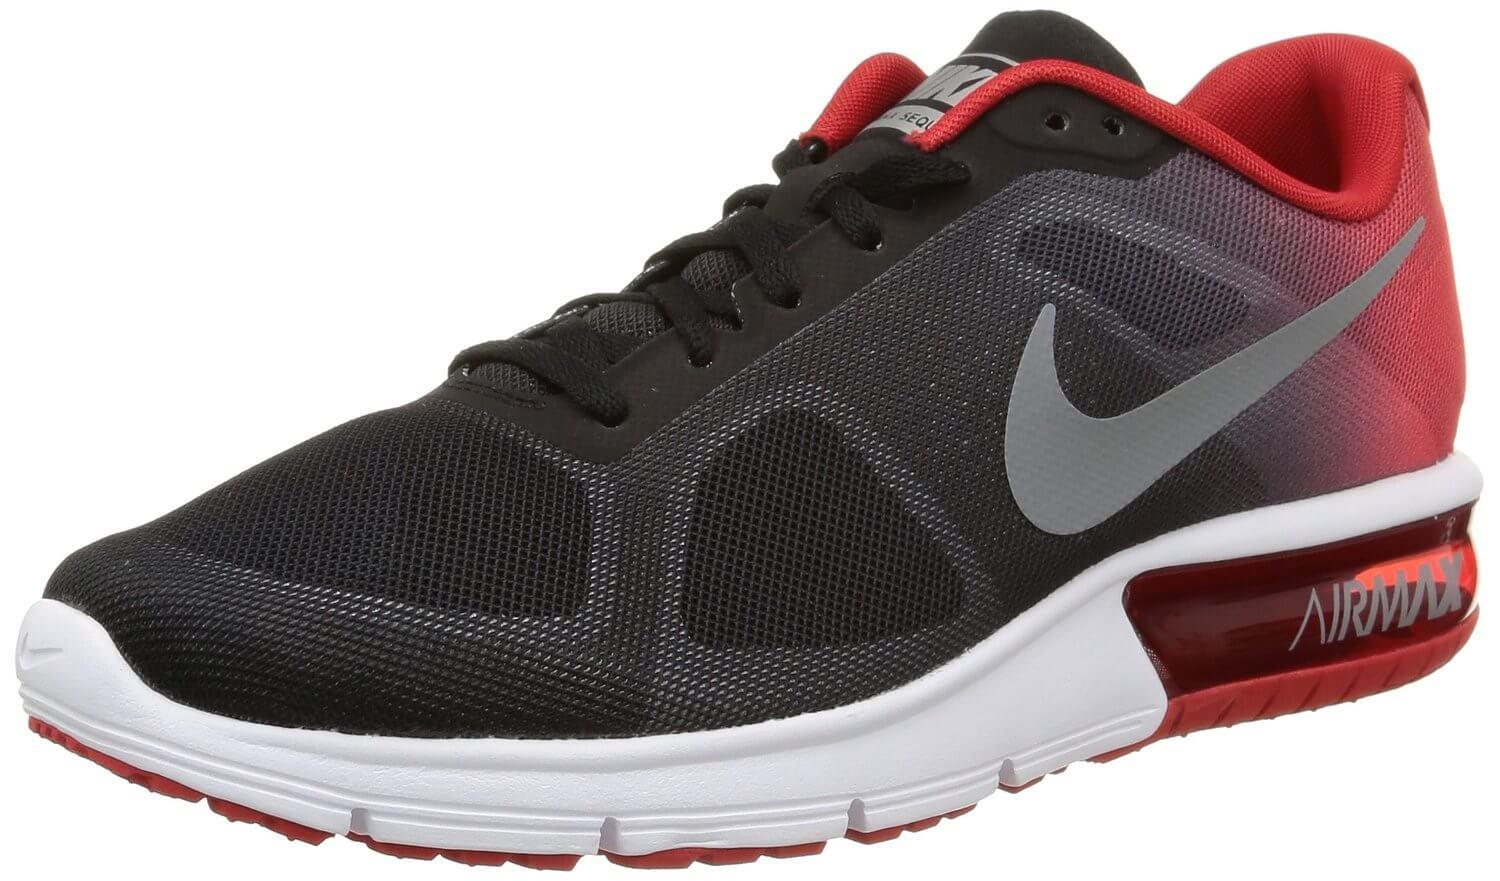 innovative design a0982 709f4 The Nike Air Max Sequent is a stylish and functional addition to the Nike  product line ...